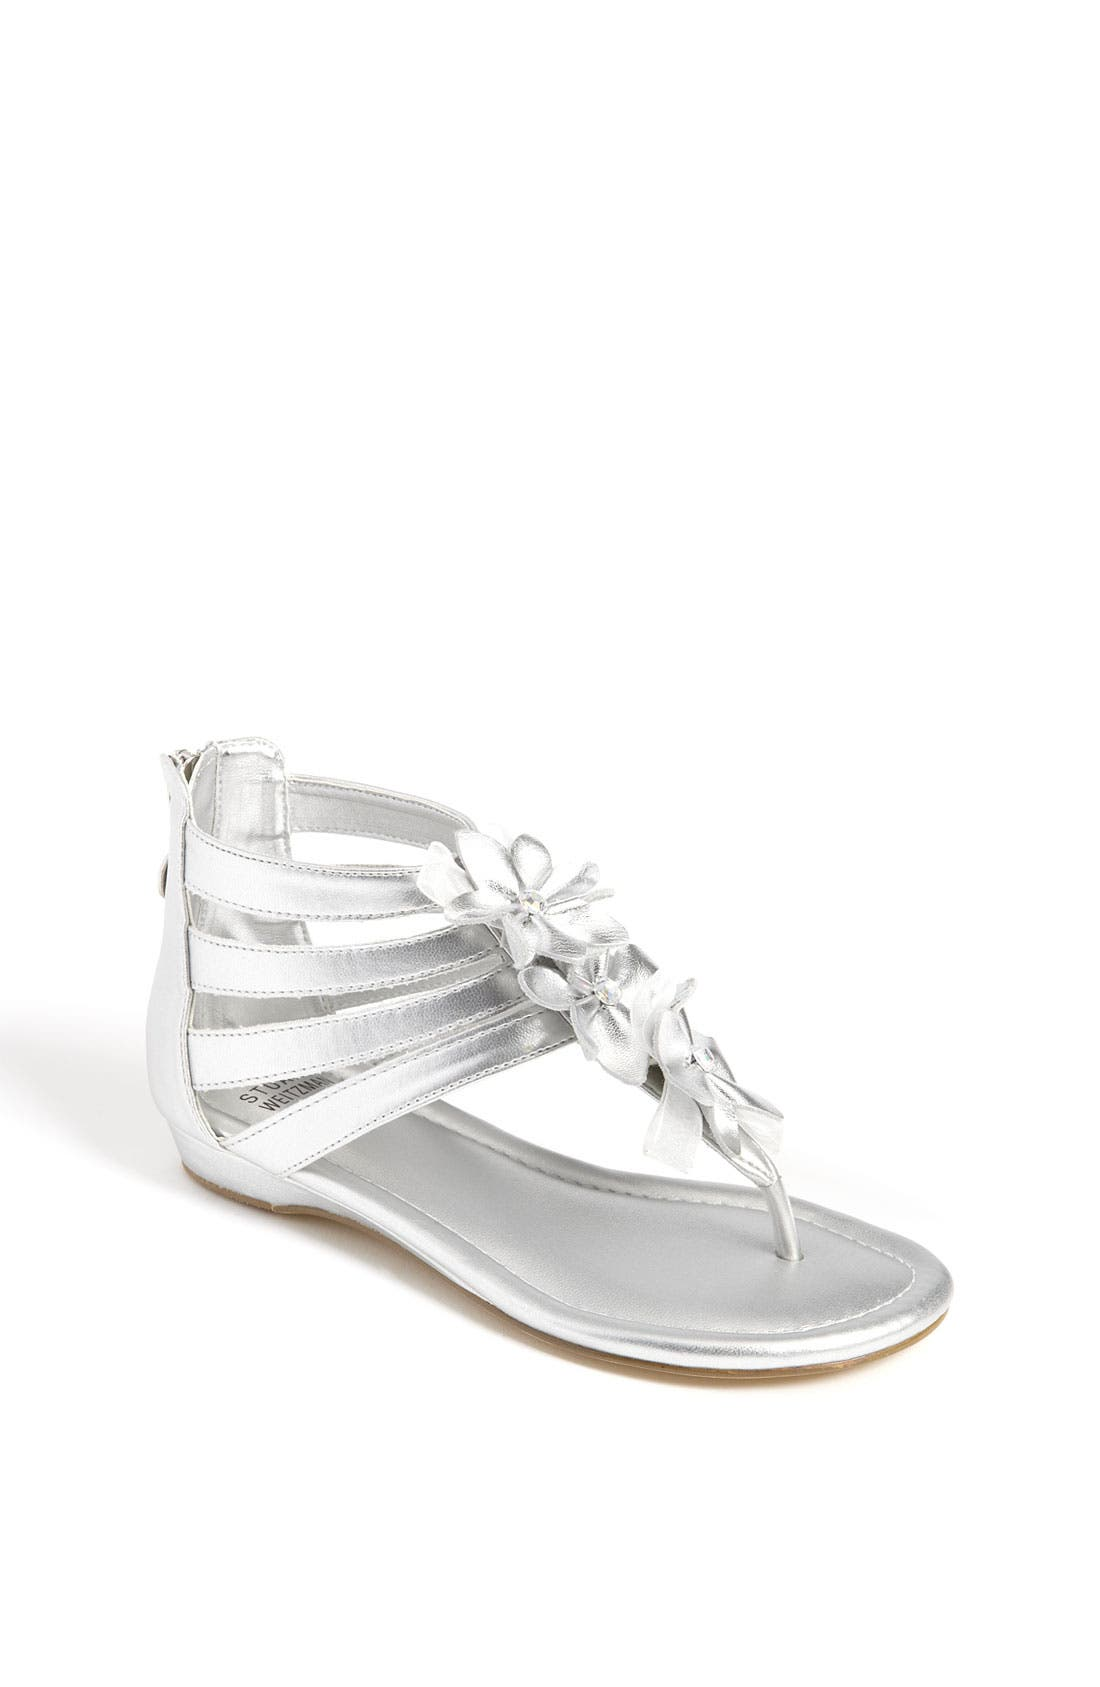 Alternate Image 1 Selected - Stuart Weitzman 'Amore' Sandal (Toddler, Little Kid & Big Kid)